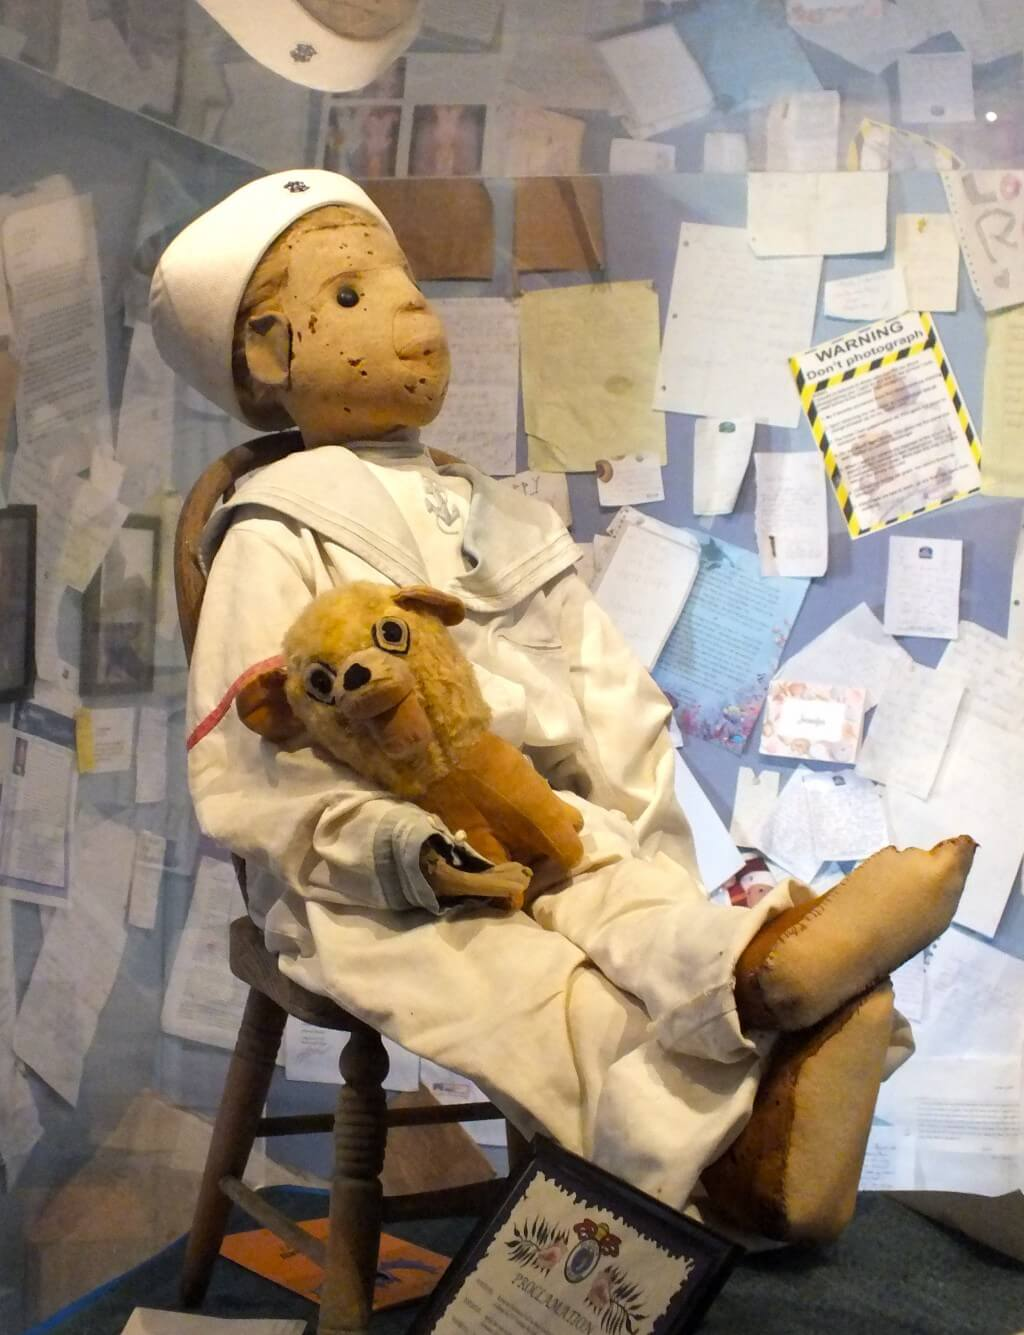 Robert The Doll is a cursed object.